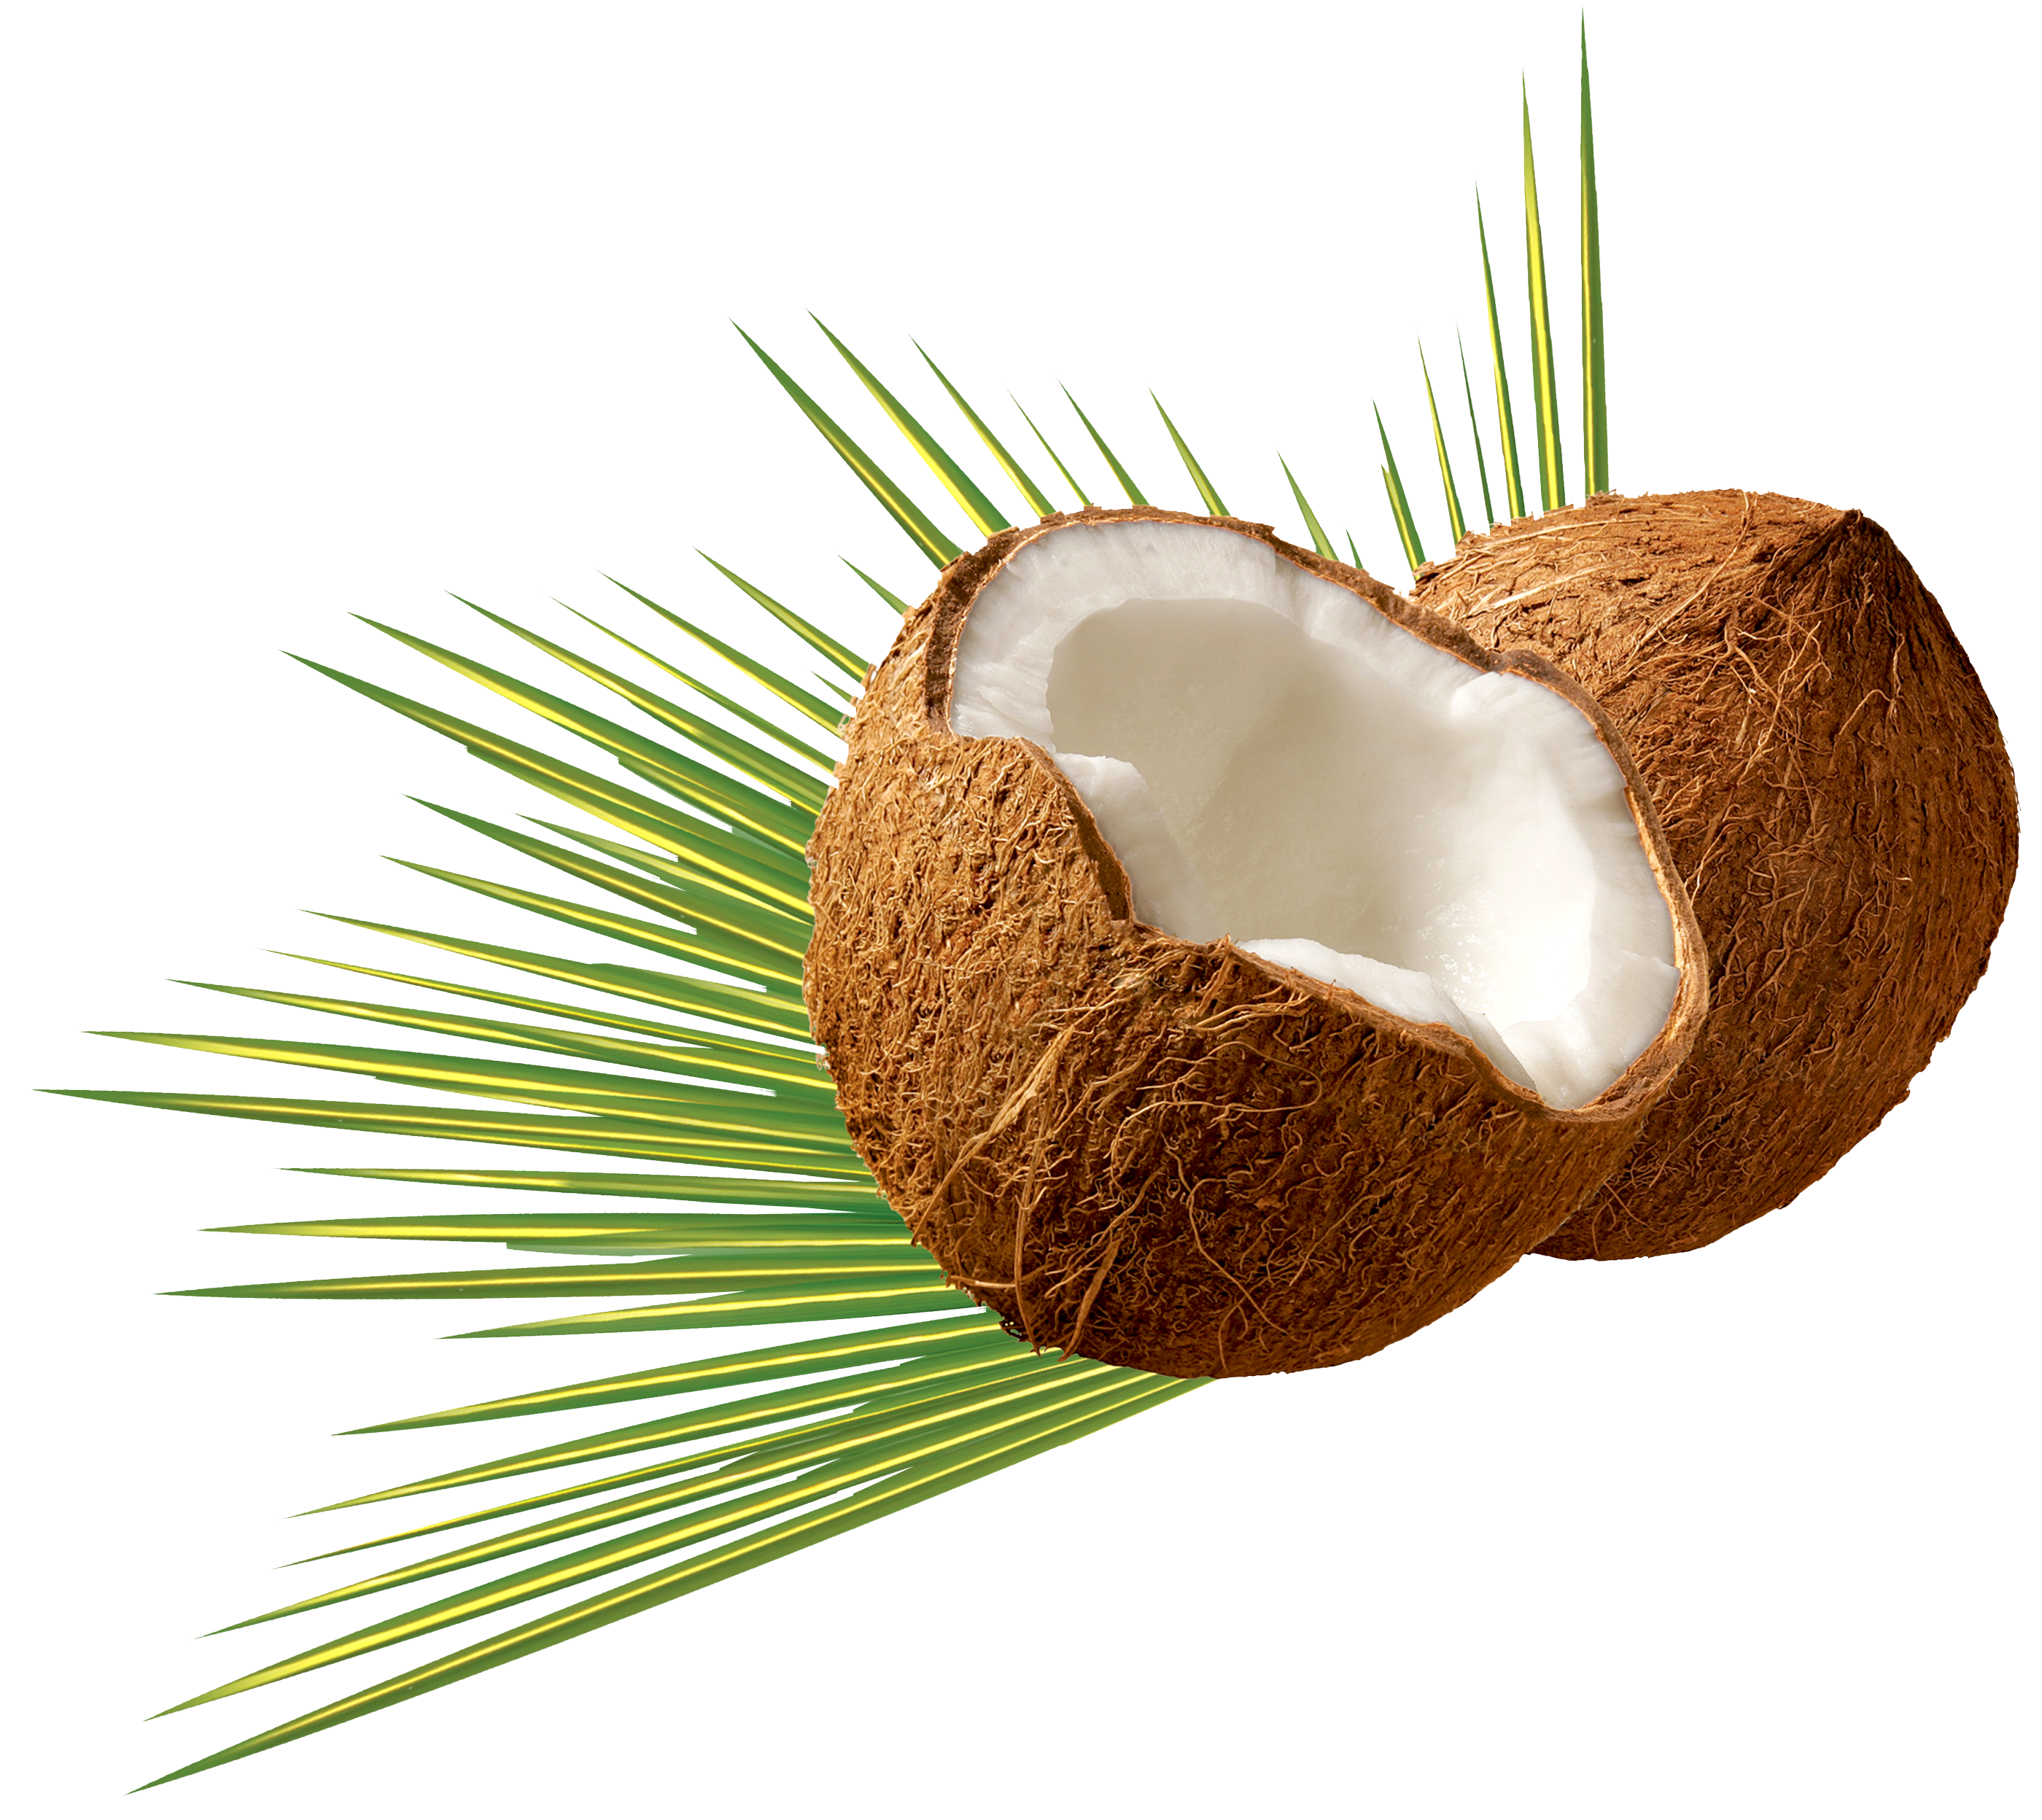 Coconut PNG - 26621